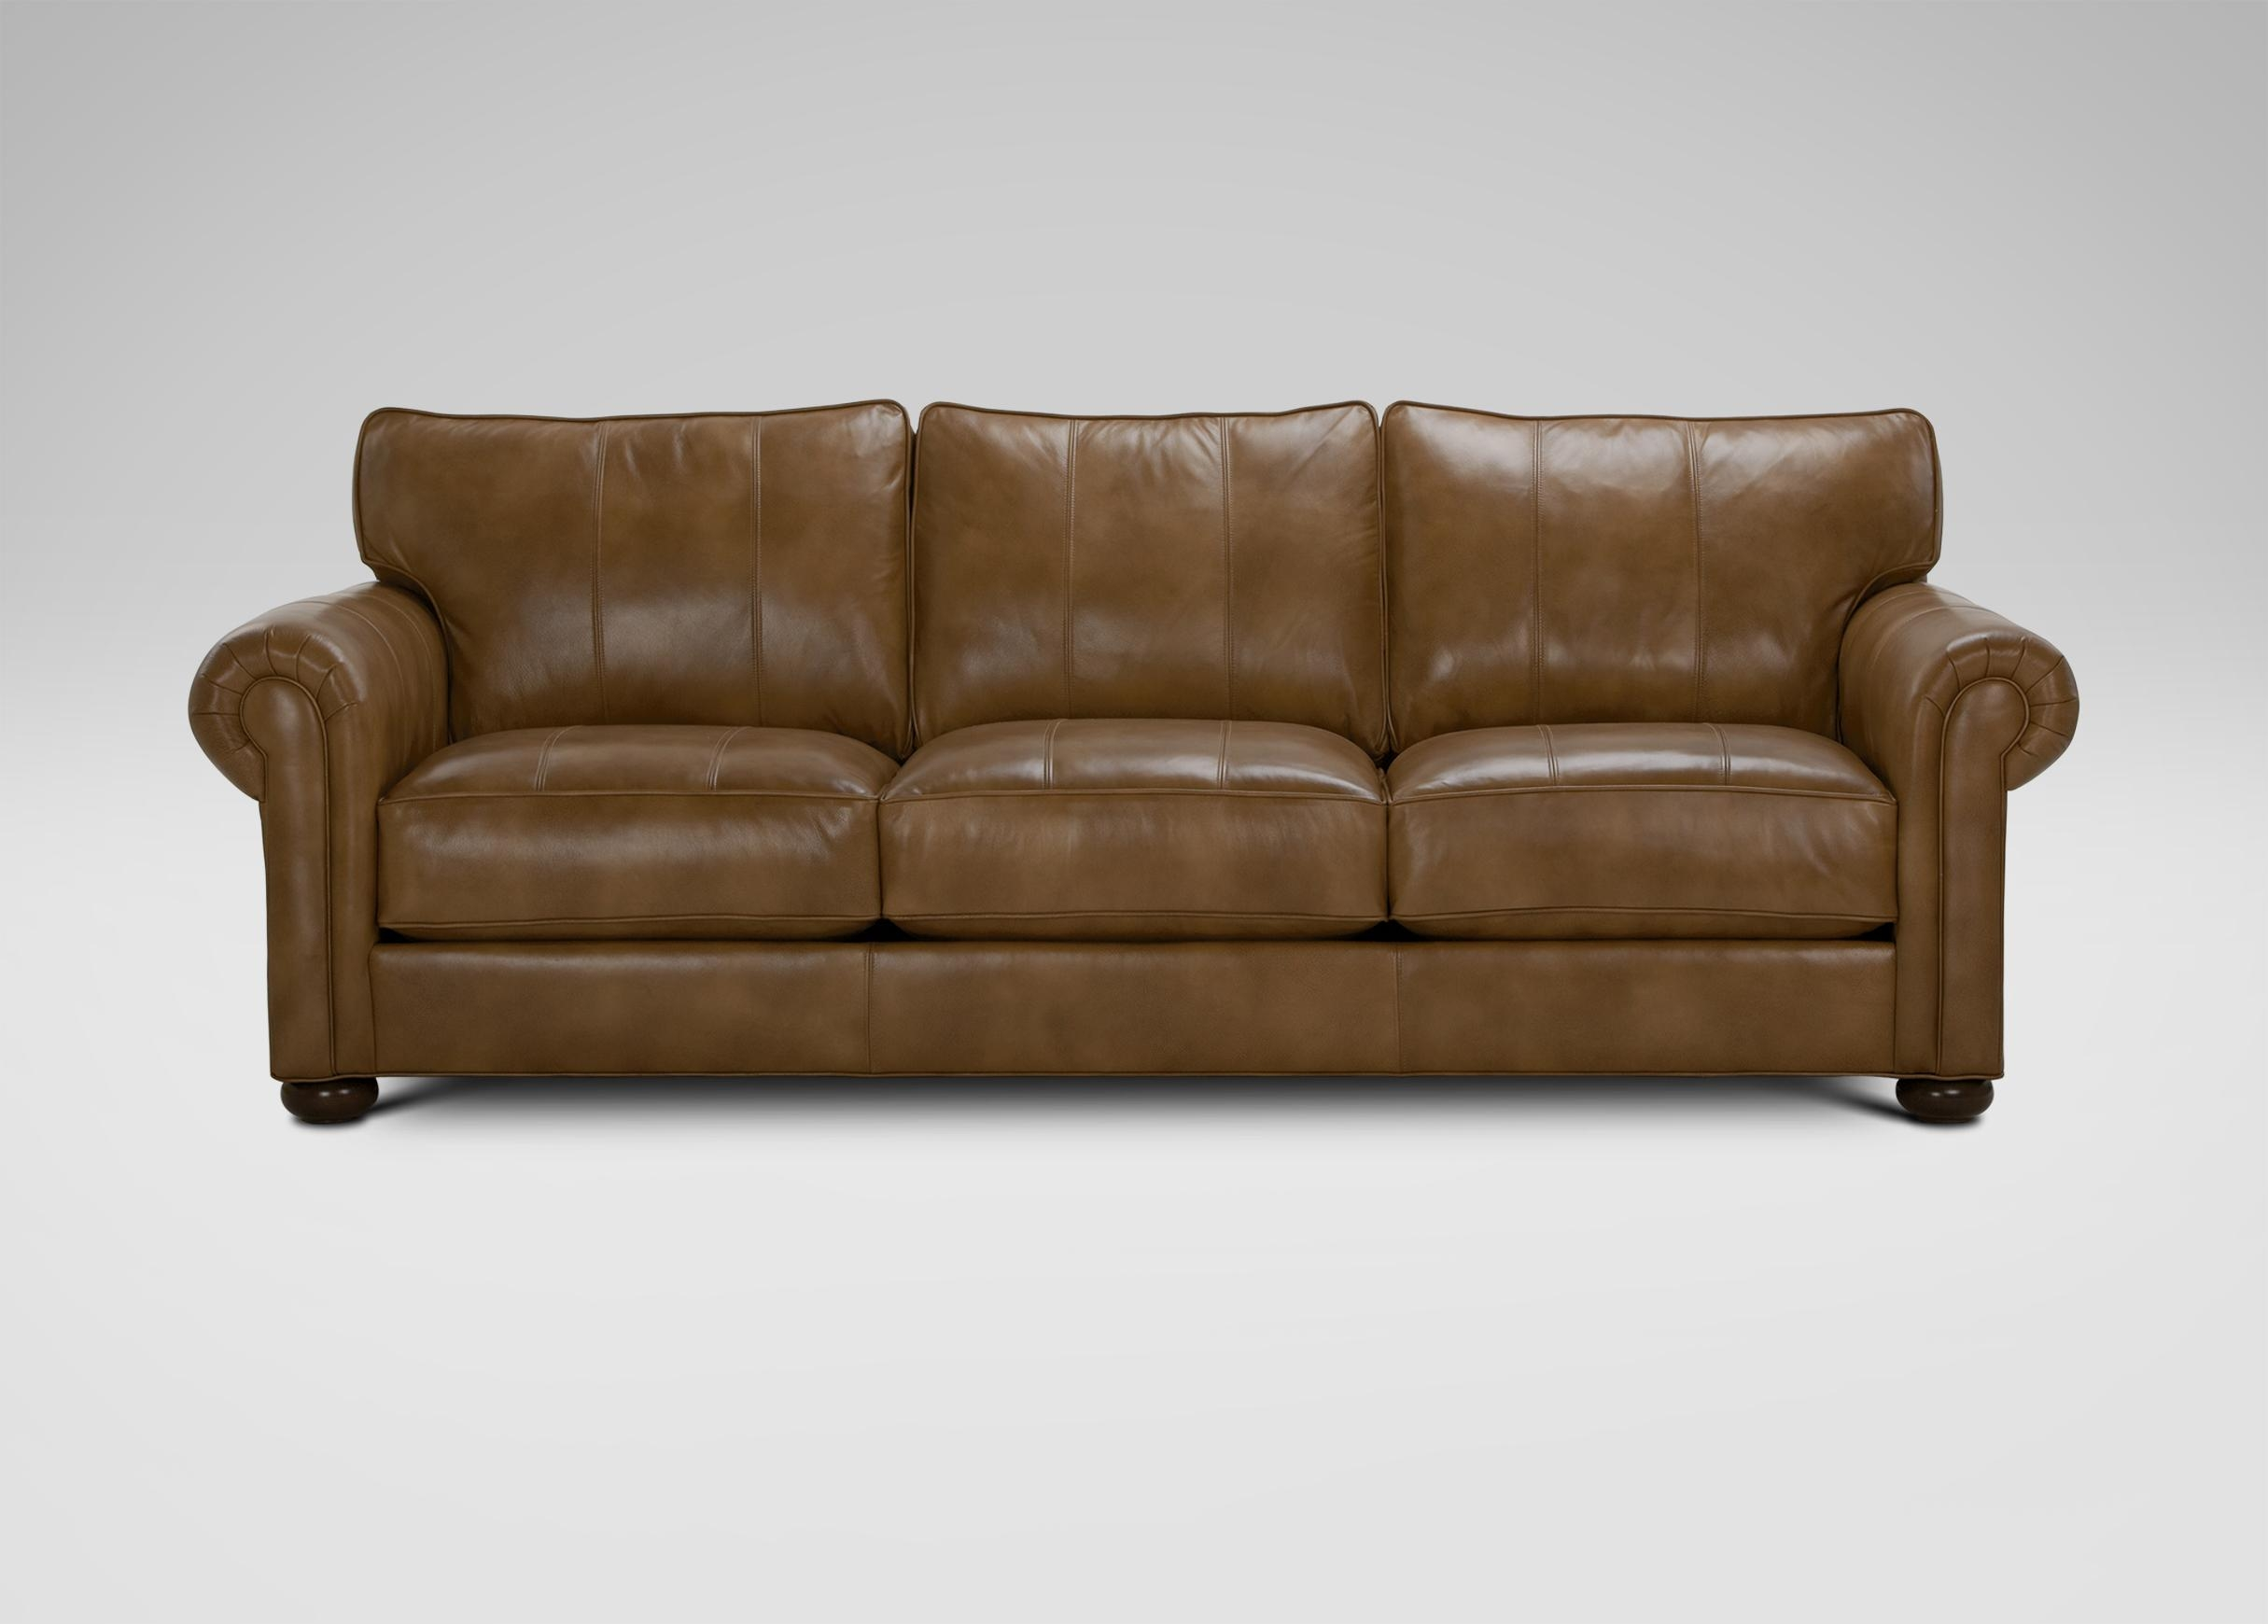 Richmond Leather Sofa | Sofas & Loveseats Pertaining To Richmond Sofas (View 2 of 20)